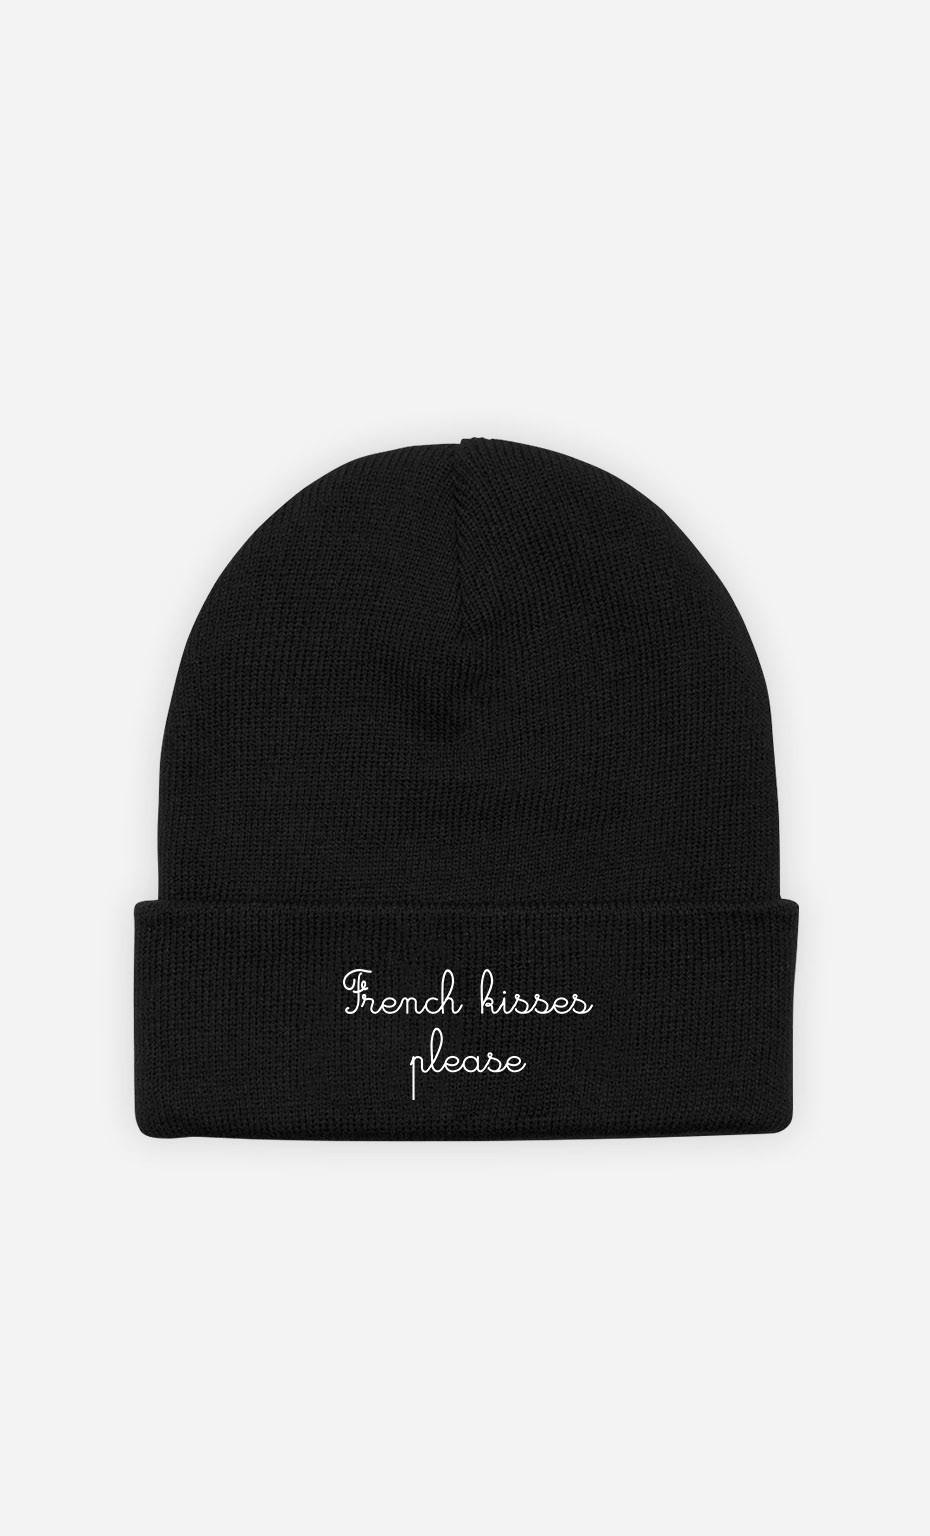 Bonnet French Kisses Please